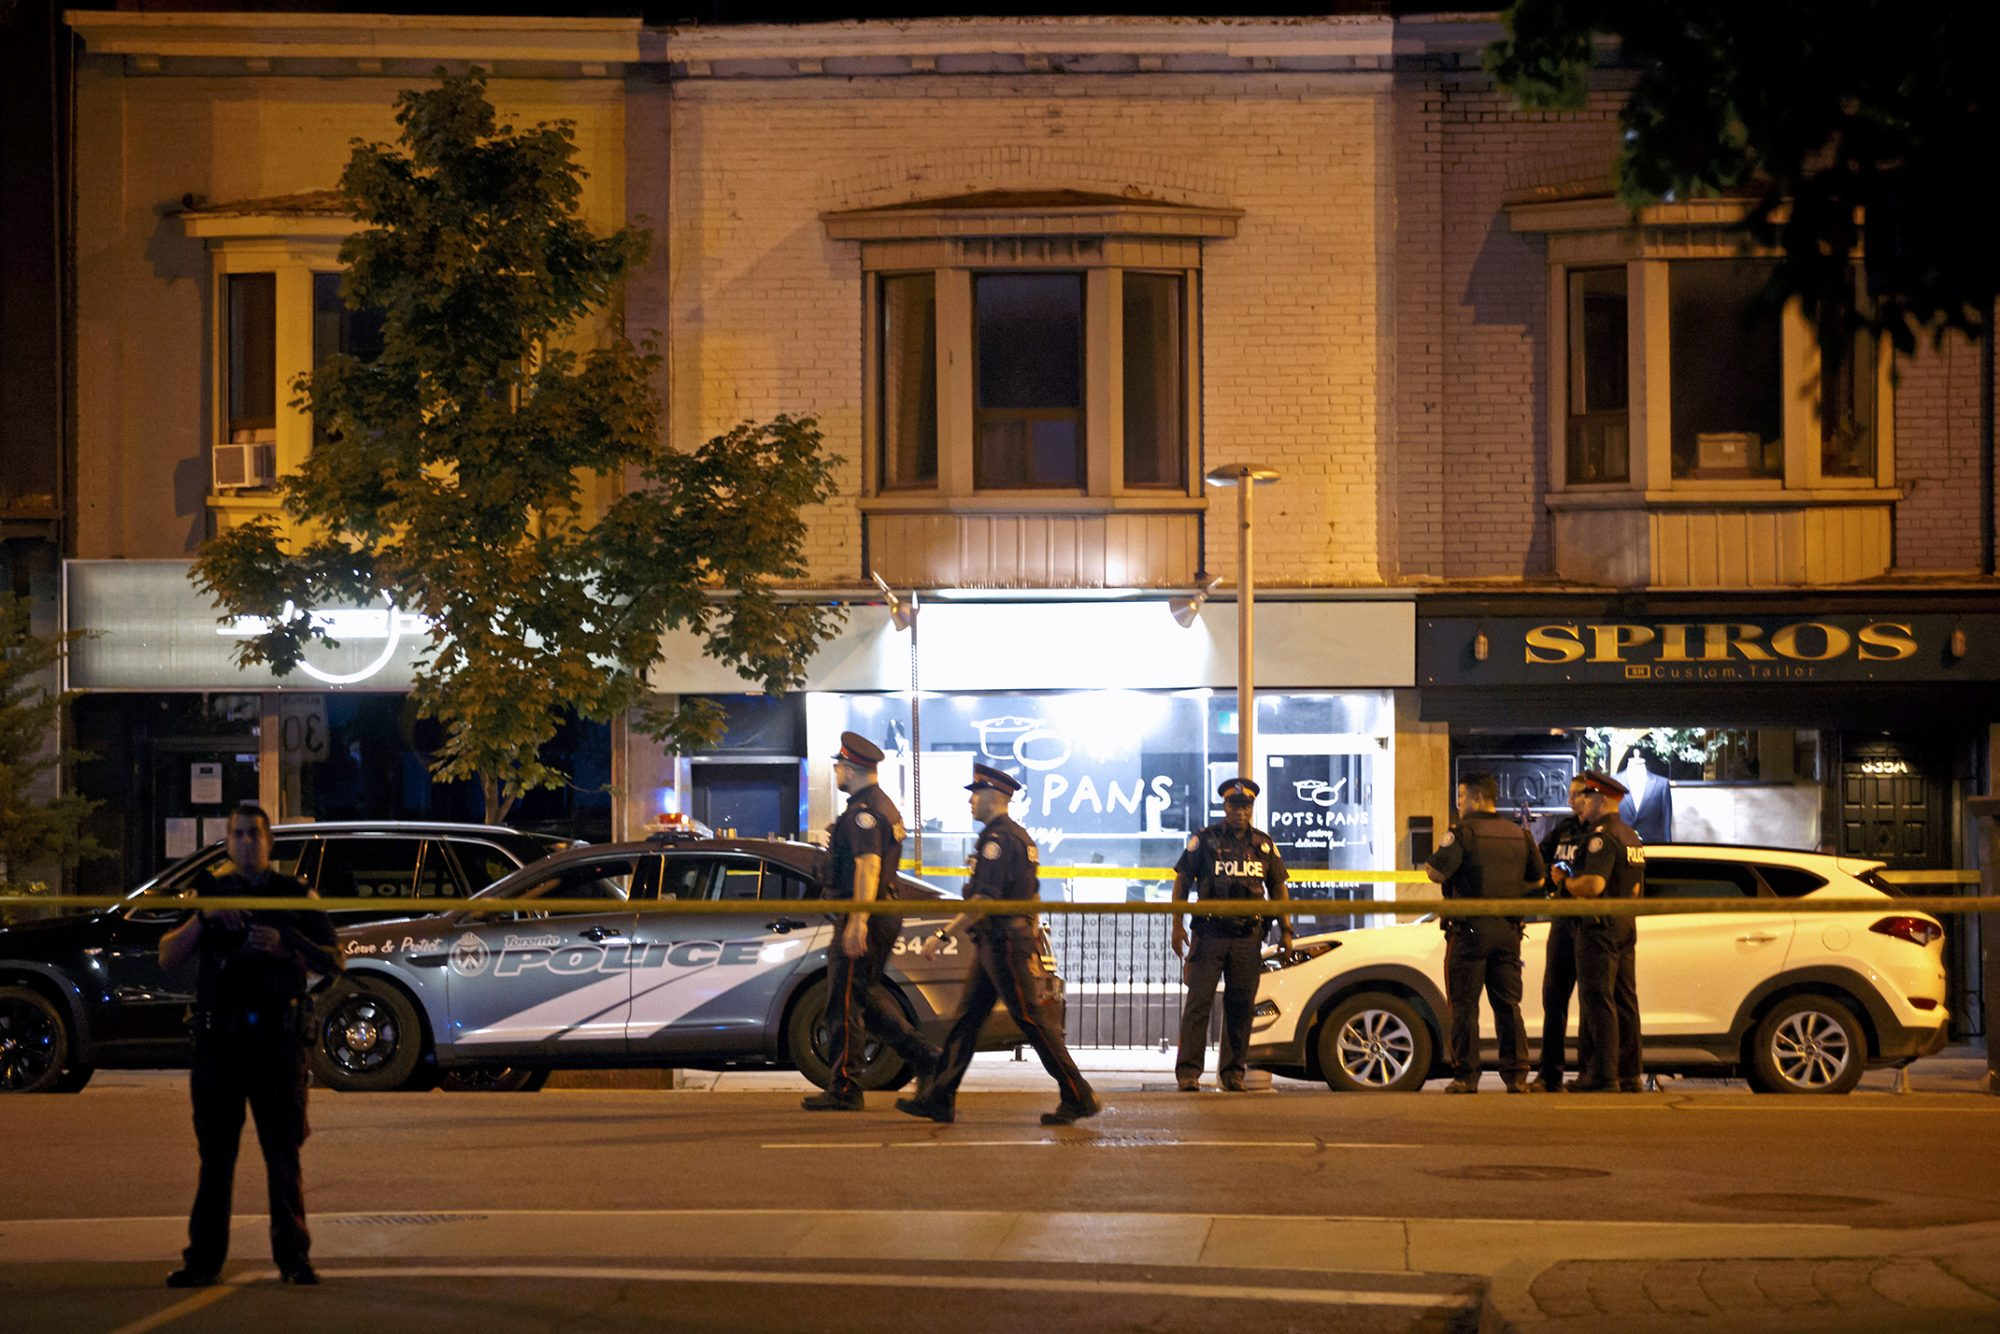 At Least 2 Killed, 12 Injured in Toronto Mass Shooting on Busy Street